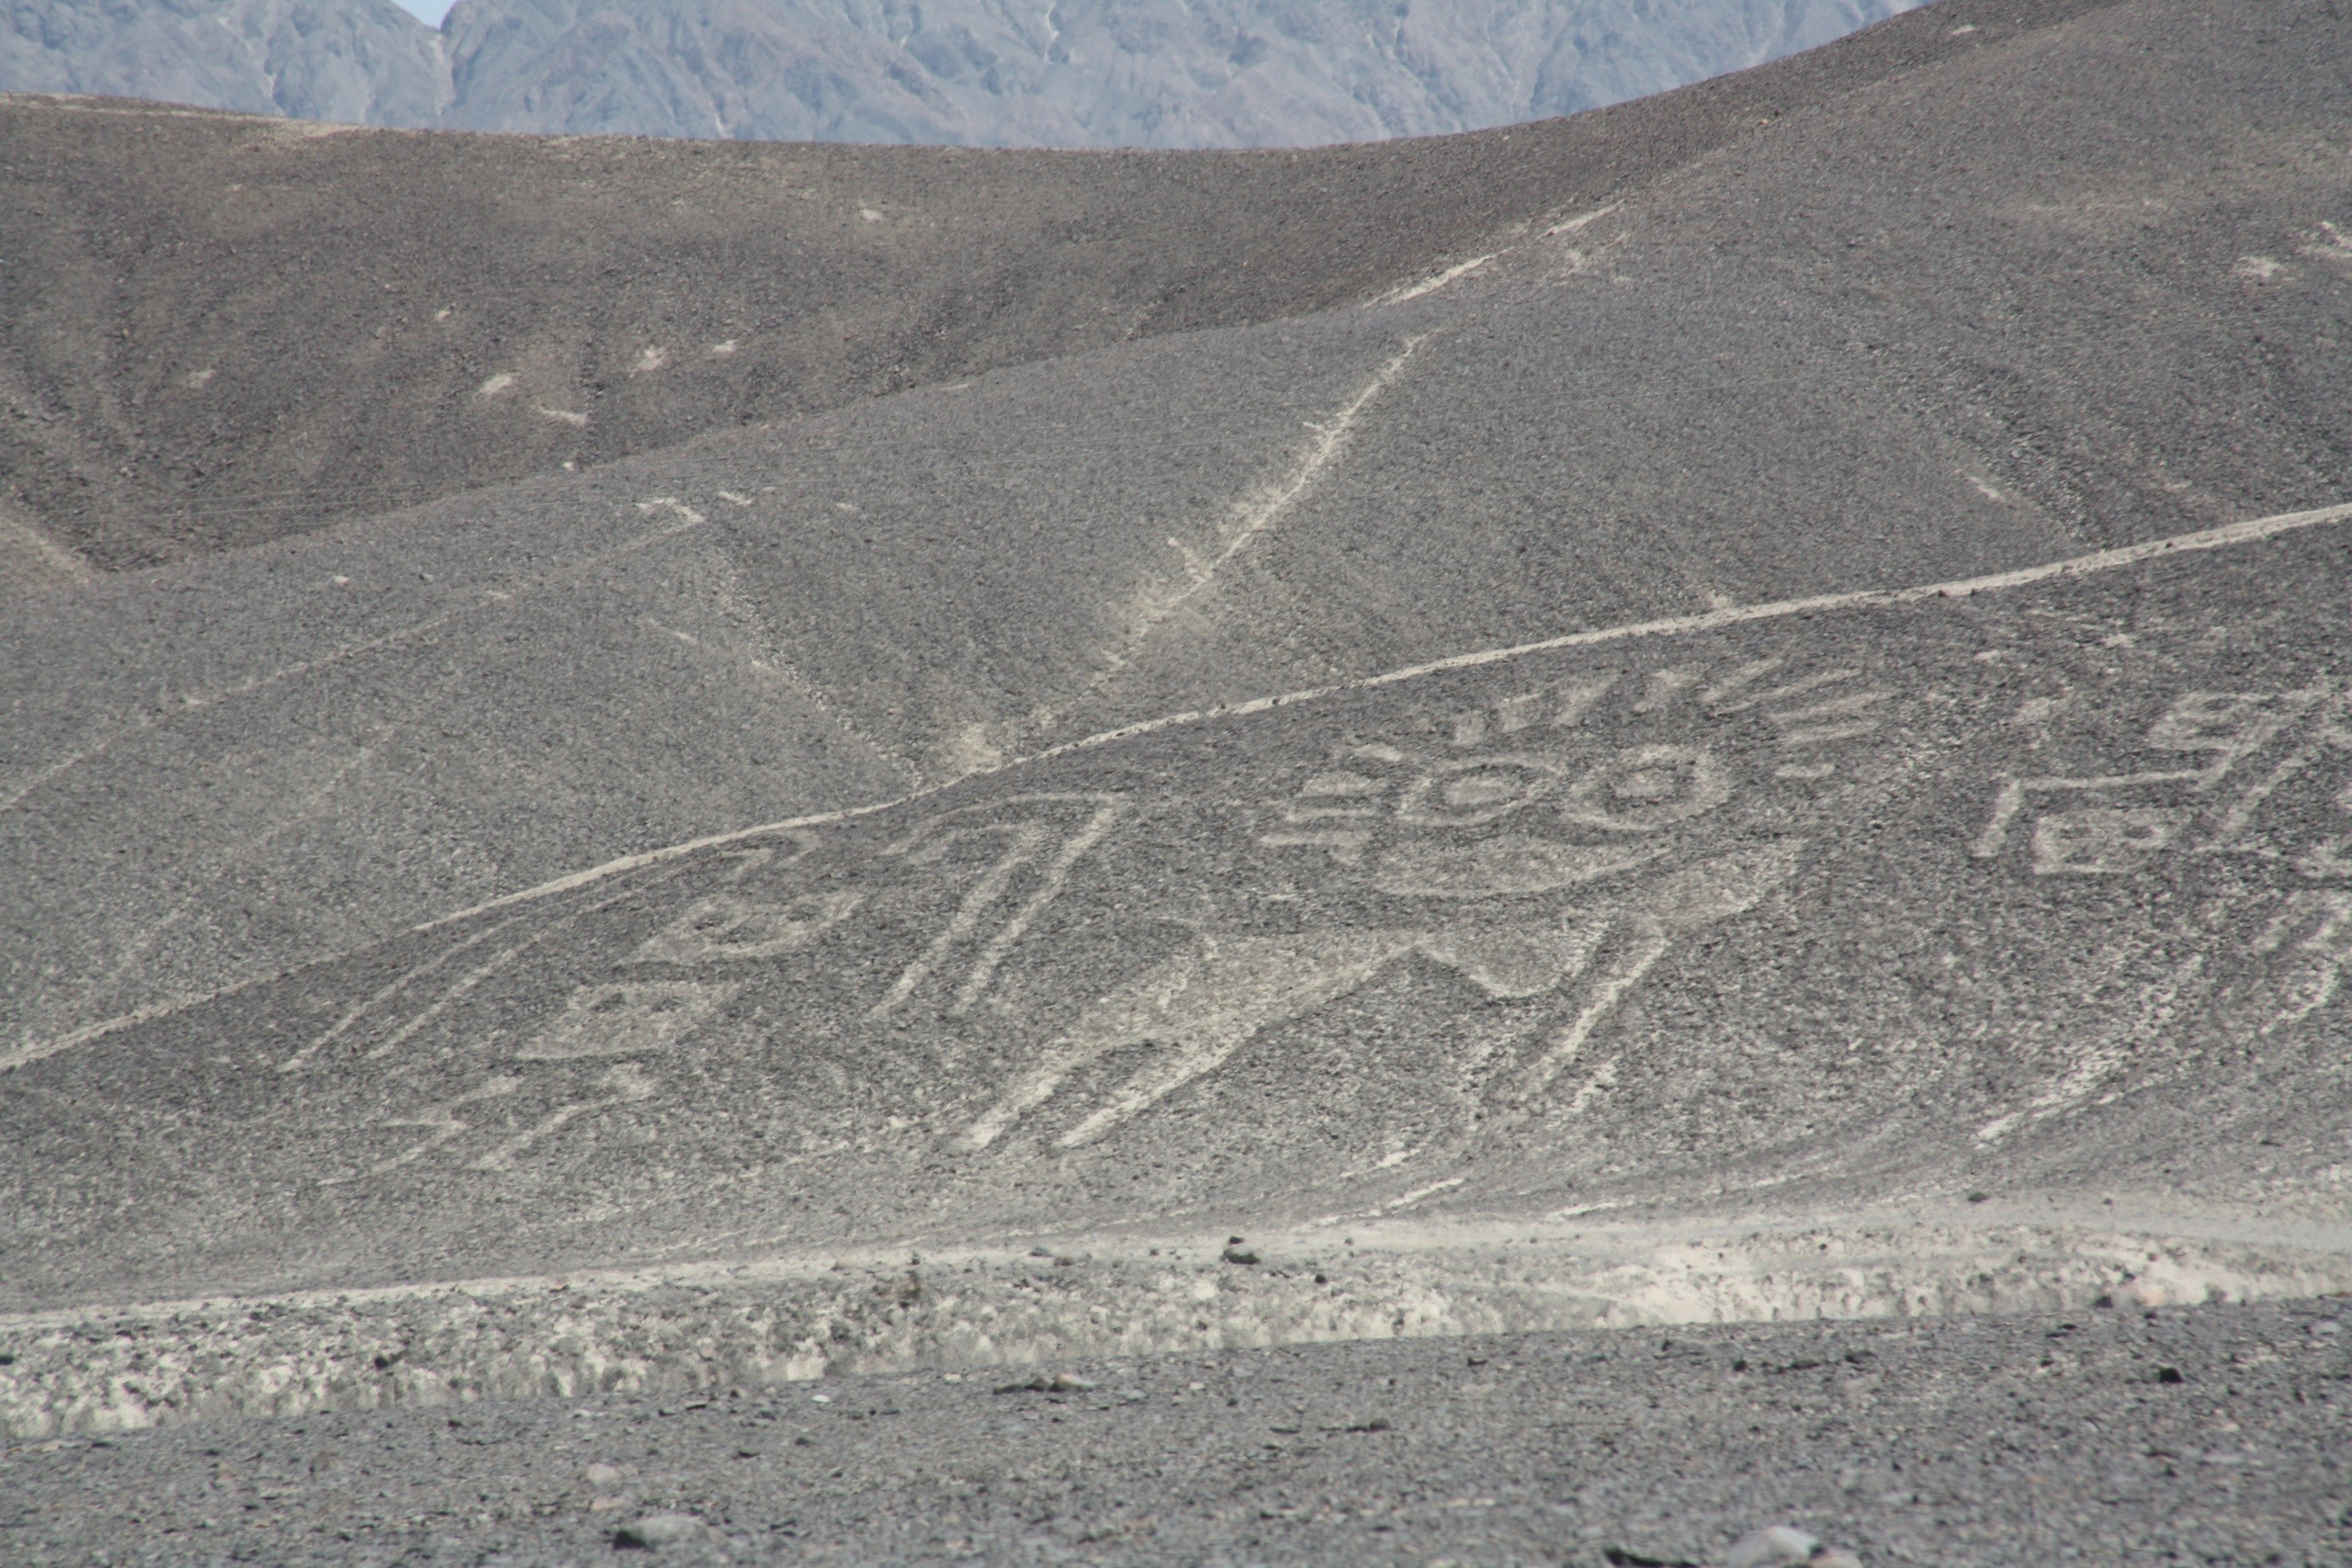 Res: 2560x1707, Ancient Aliens images Nazca HD wallpaper and background photos